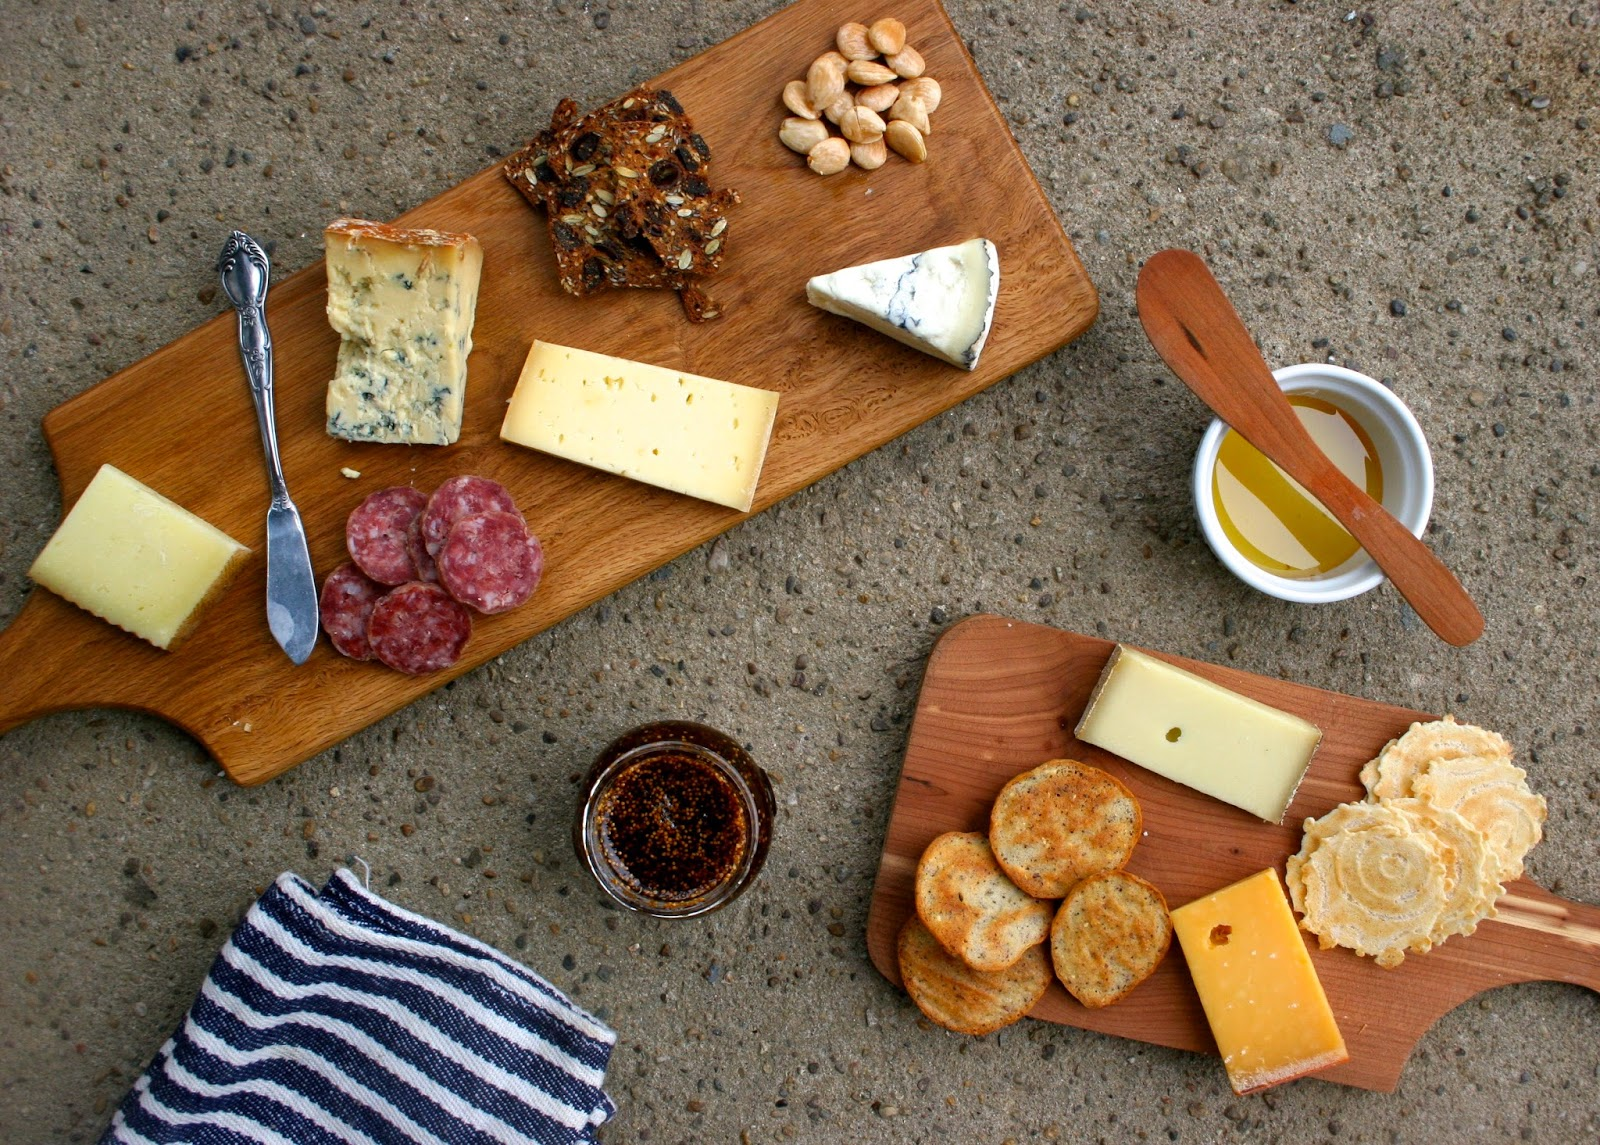 Cheese Plate with Salami, Almonds, Fig Jam, and Homemade Crackers